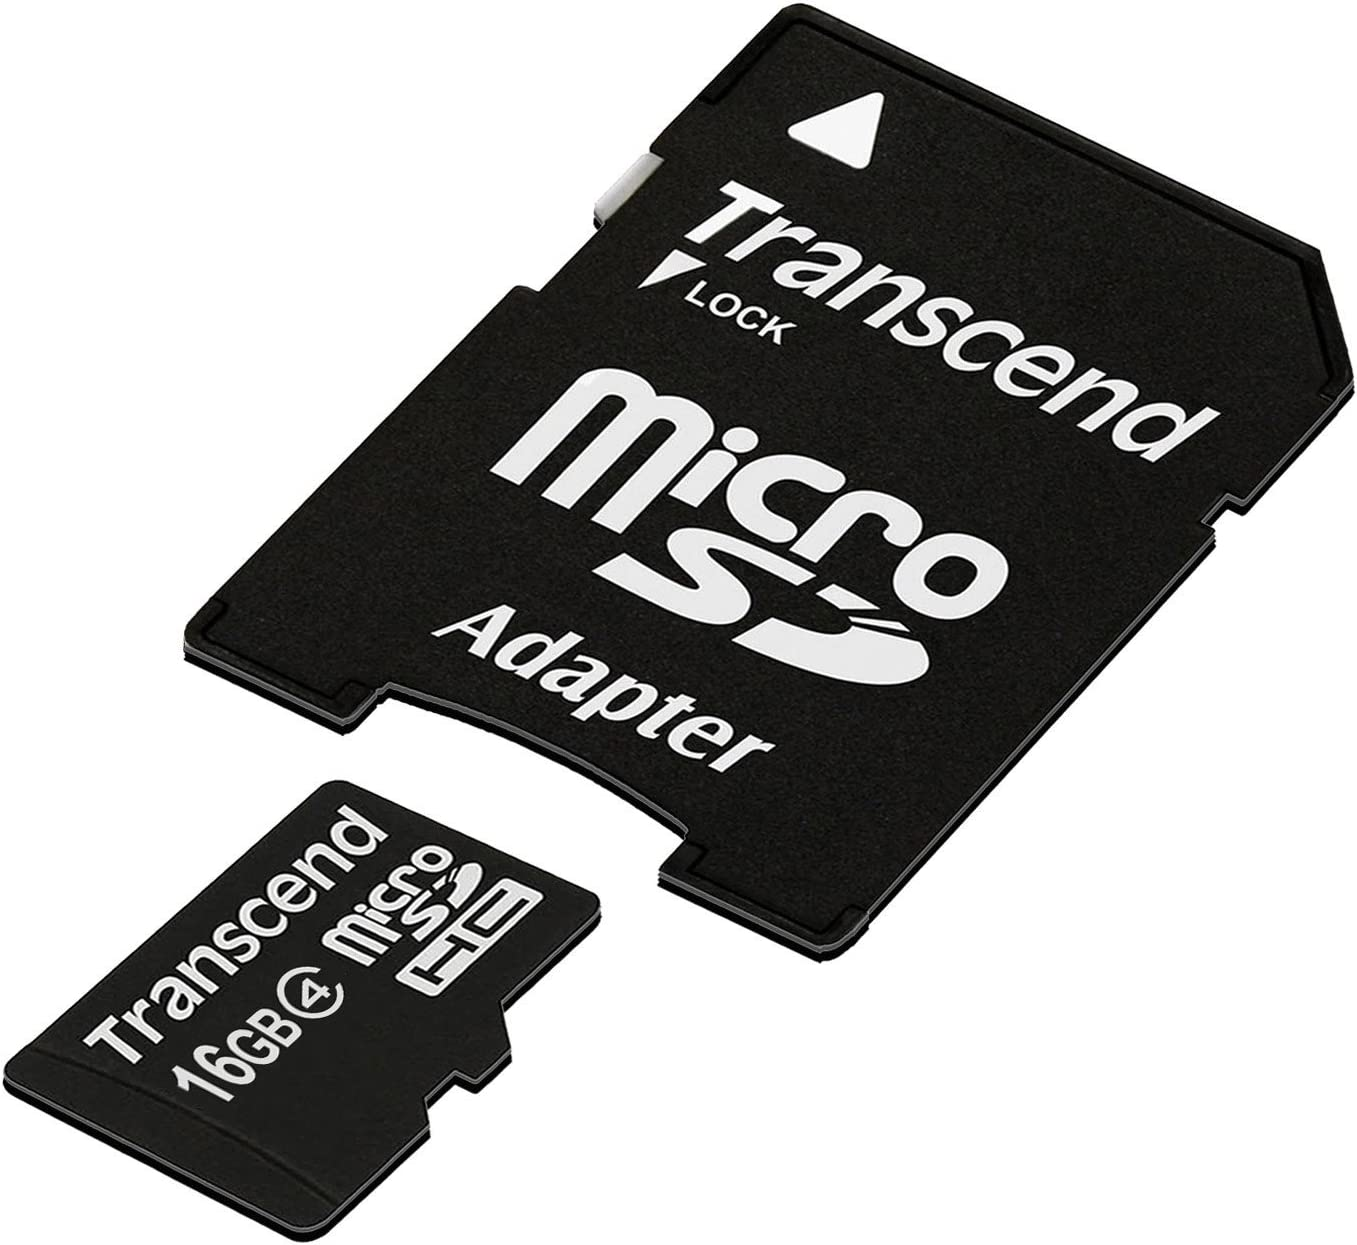 Class 4 . Professional Kingston 16GB MicroSDHC Card for Toshiba Encore Tablet with custom formatting and Standard SD Adapter.